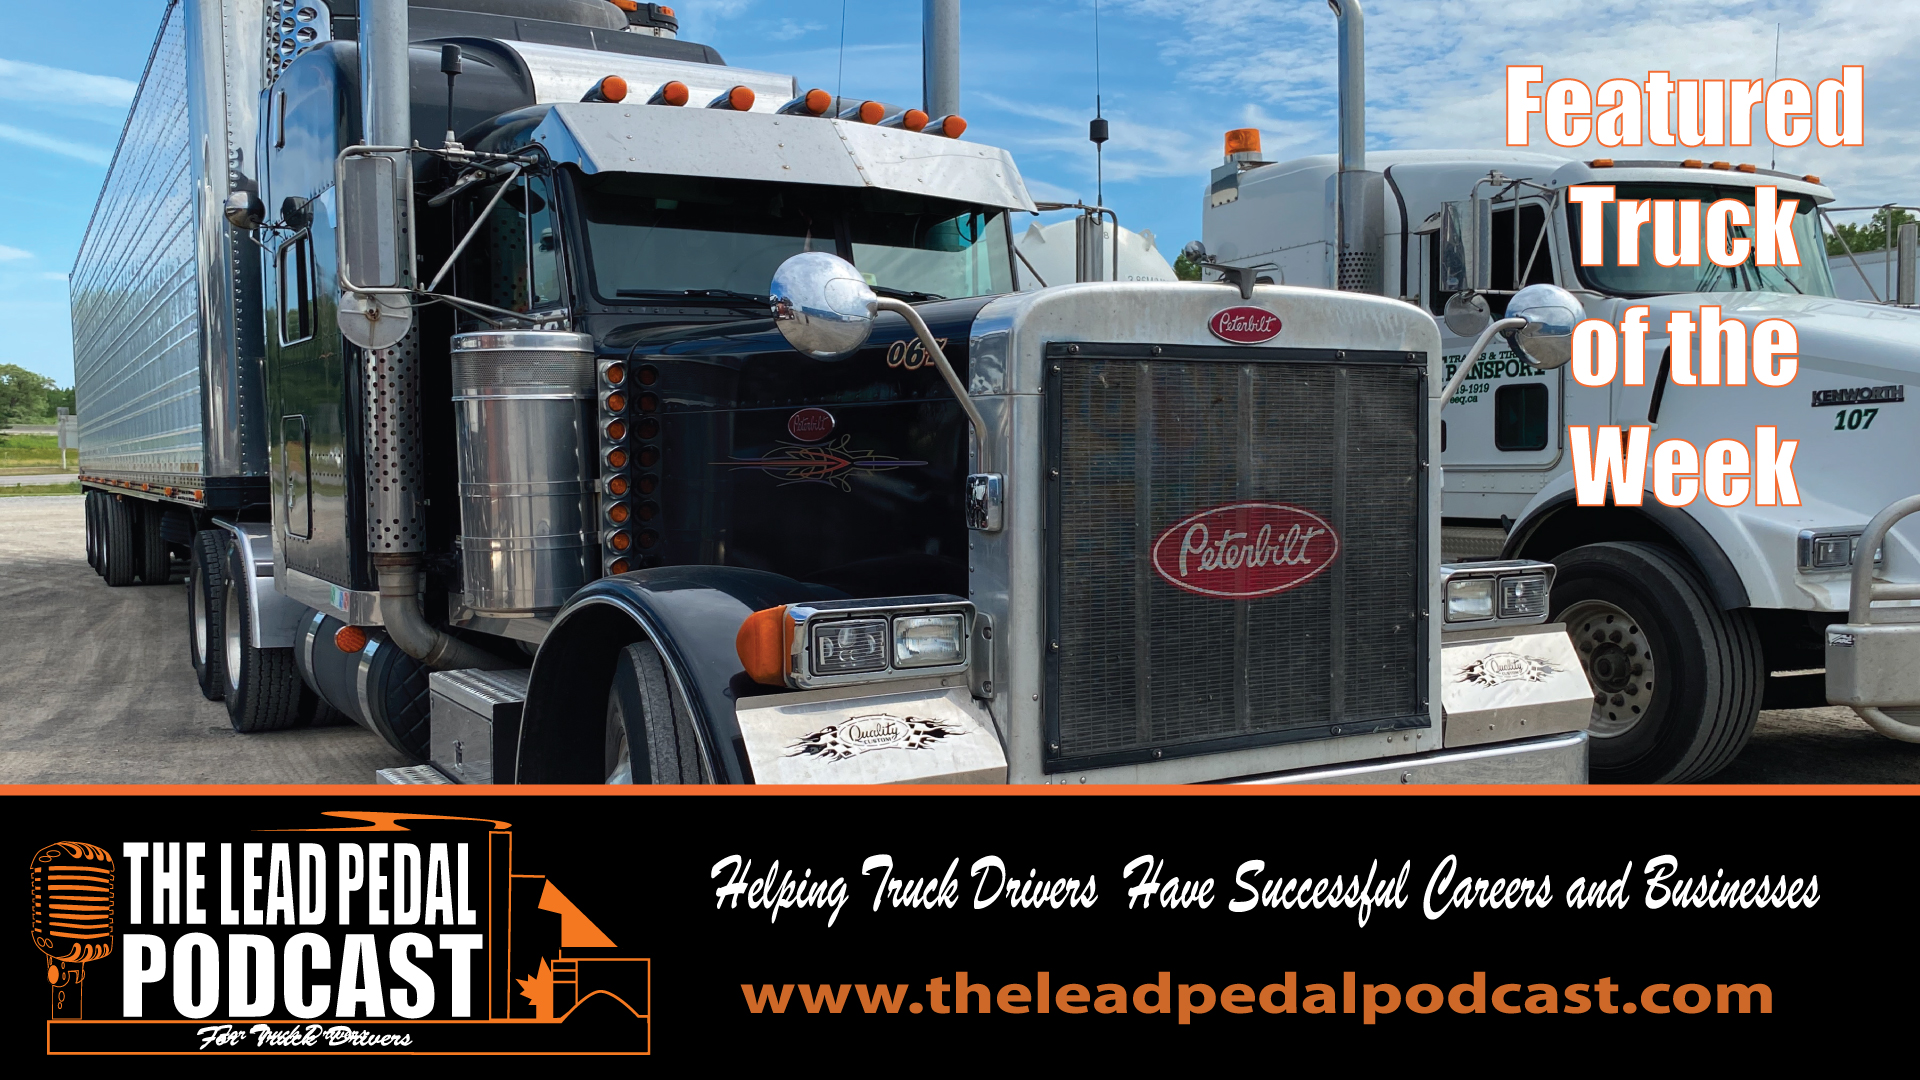 Featured Truck of the Week - LRS Peterbilt